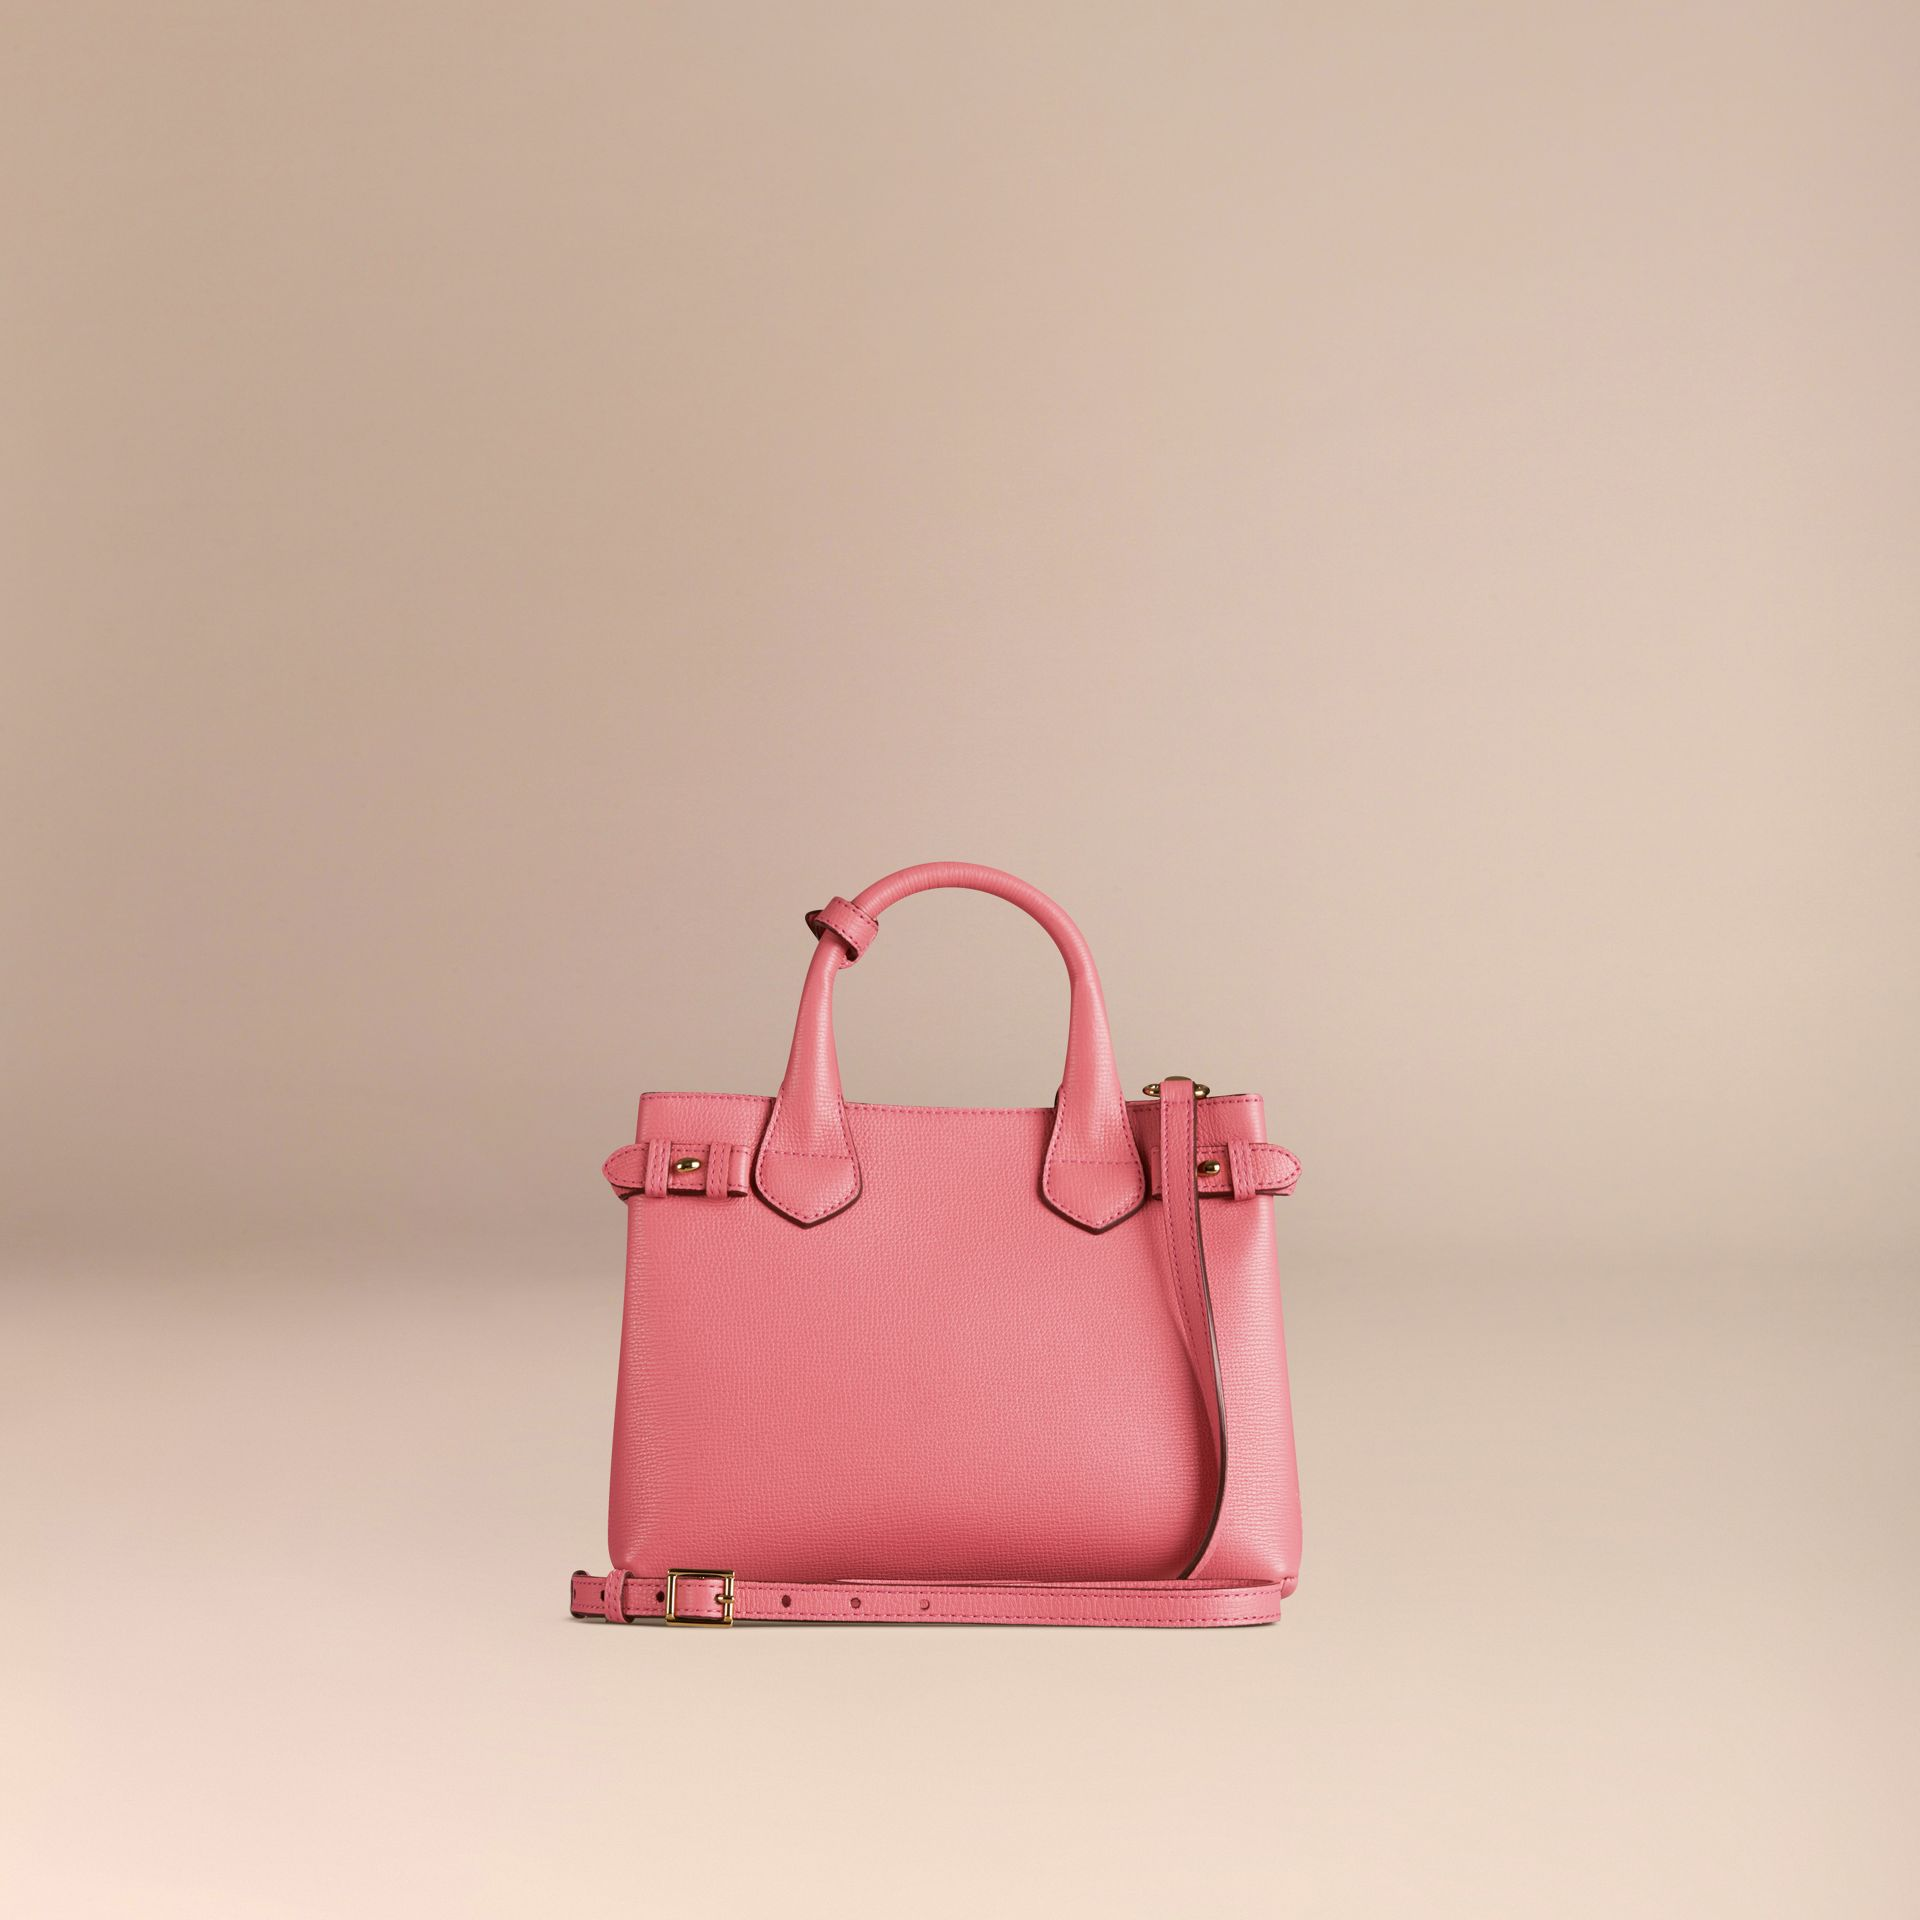 Rose mauve Petit sac The Banner en cuir et coton House check Rose Mauve - photo de la galerie 4